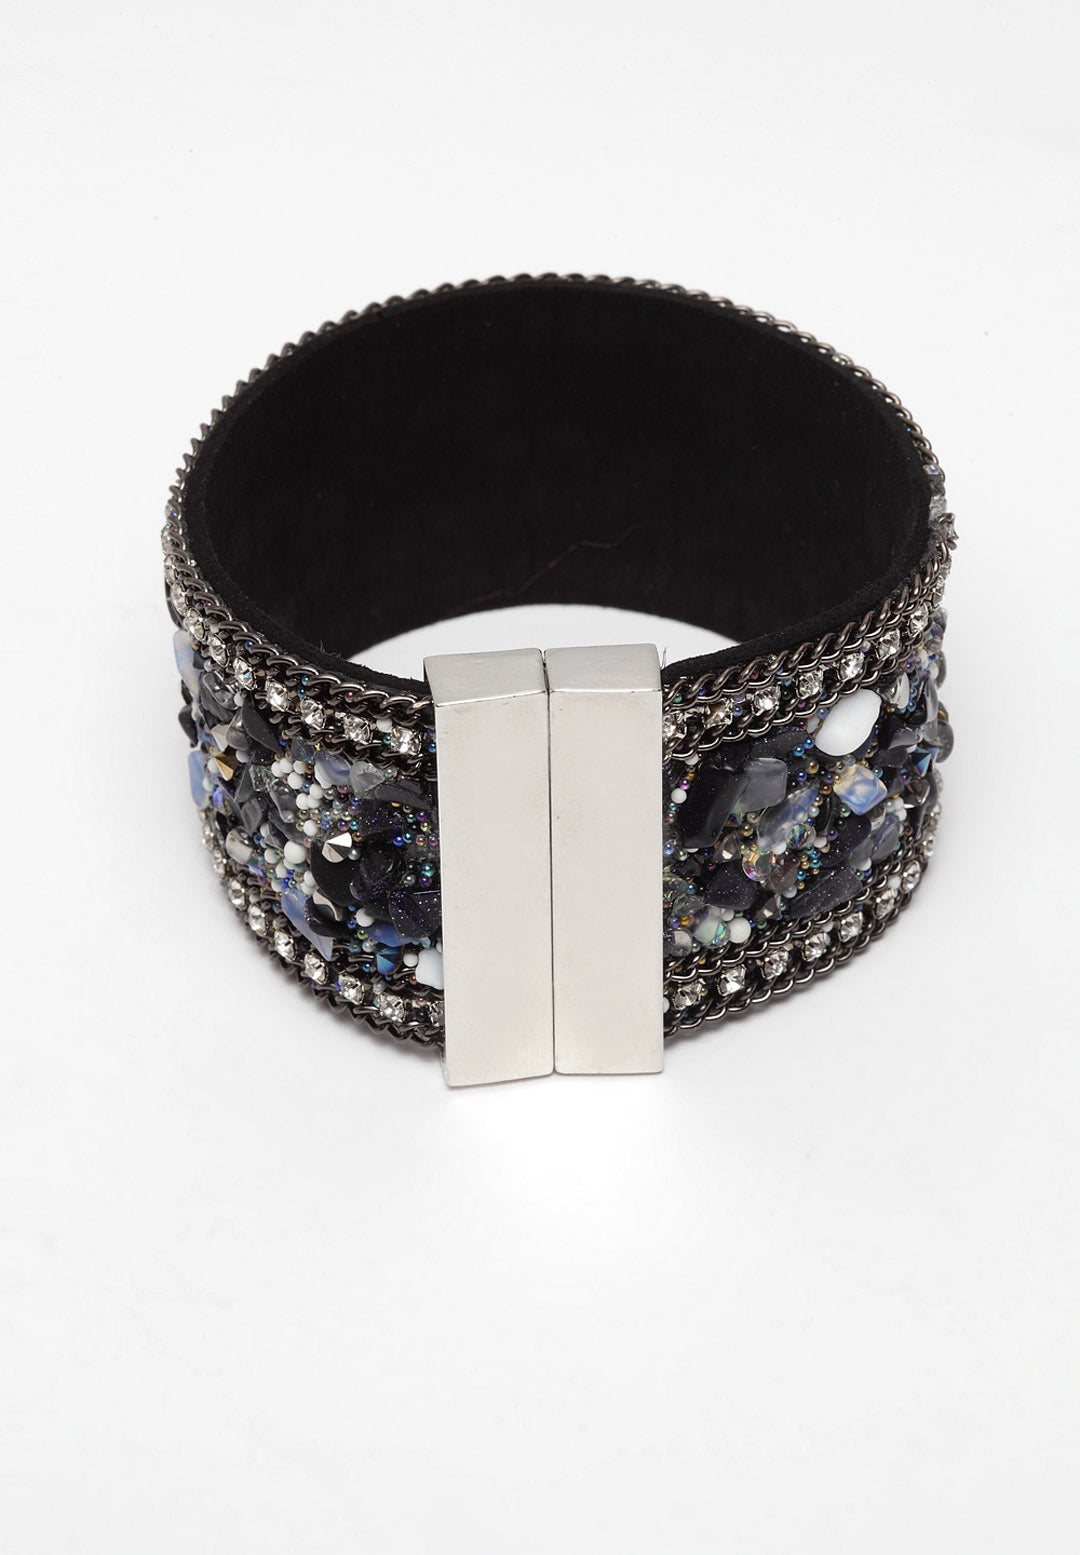 Avant-Garde Paris Luxury Bohemian Natural Stone Leather Bracelets